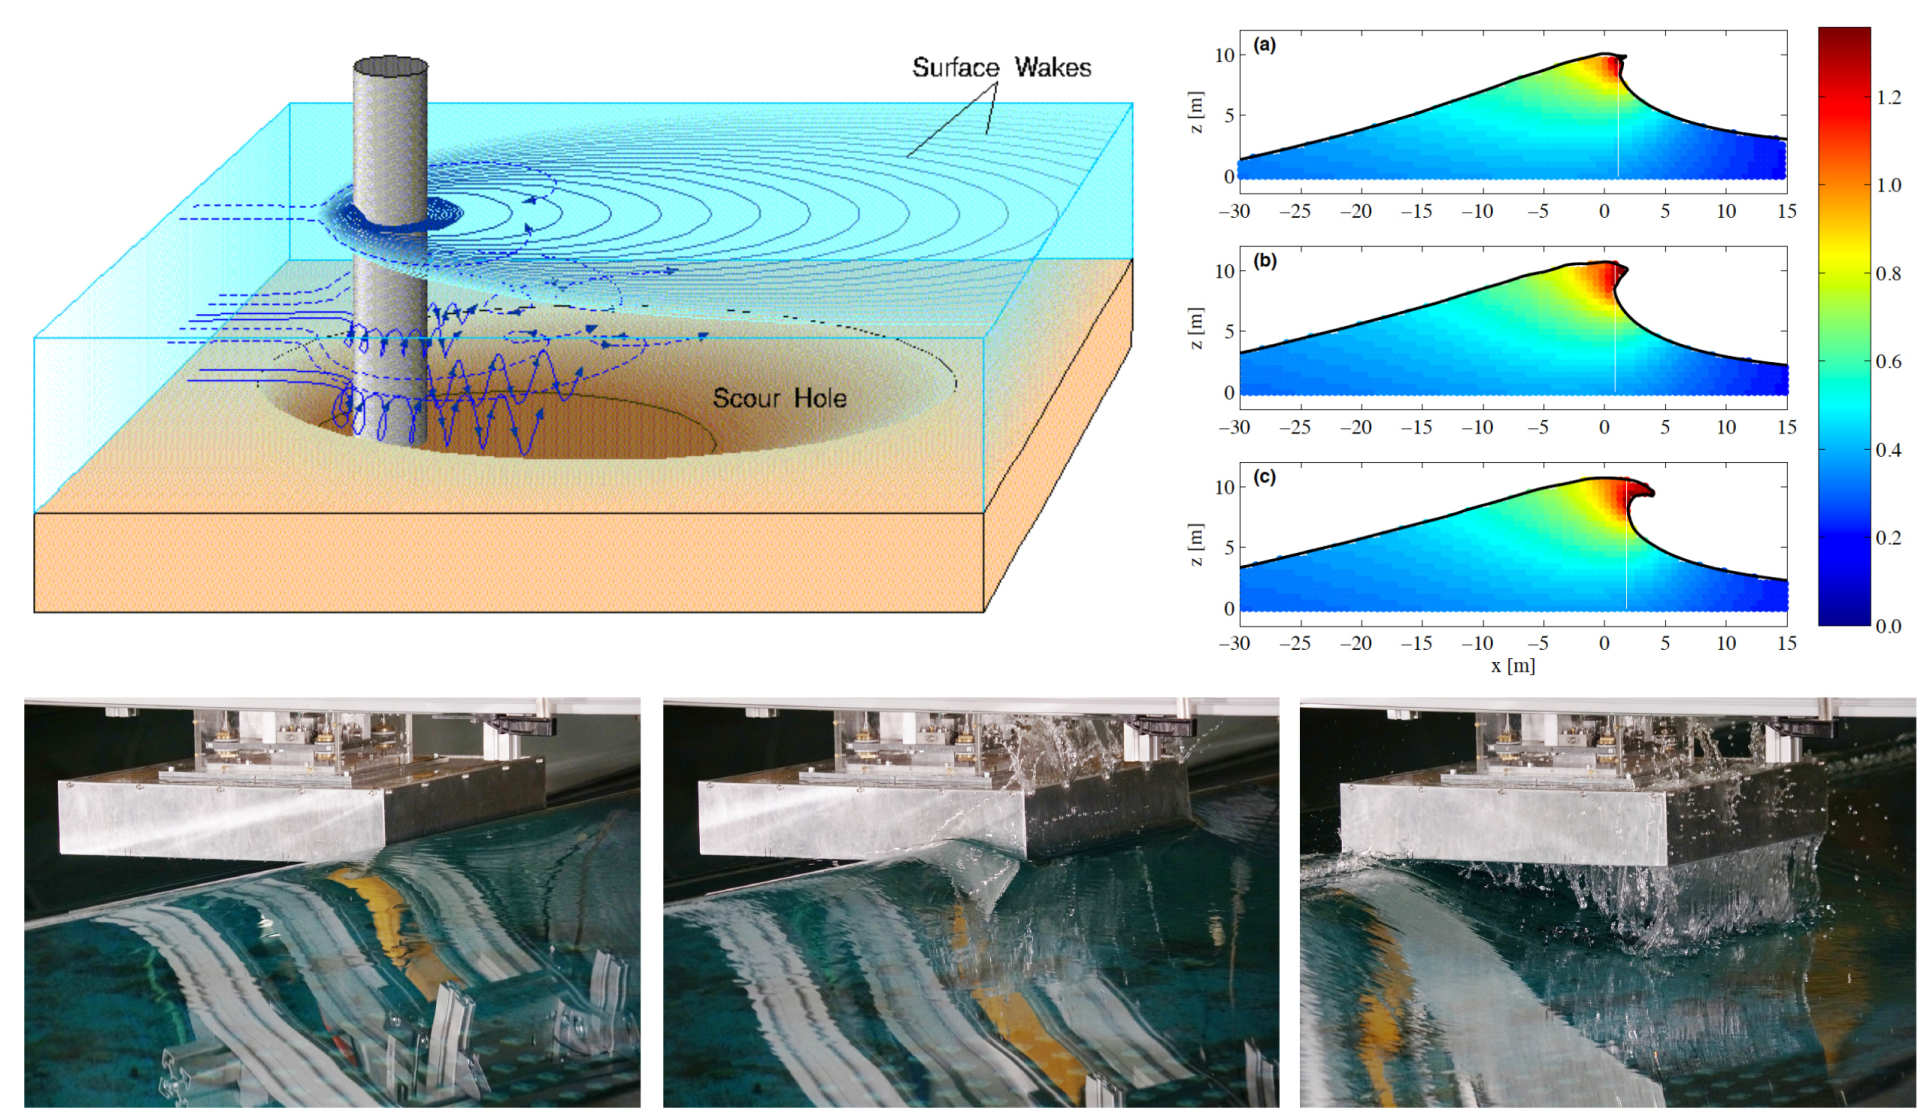 [Top-left] Flow around a column and associated scour hole, [Top-right] Modelling spilling and plunging breaking waves and their underlying particle kinematics, [Bottom] Sequence of photographs of a breaking wave hitting a deck structure, as modelled in the wave basing within the Hydrodynamics laboratory.